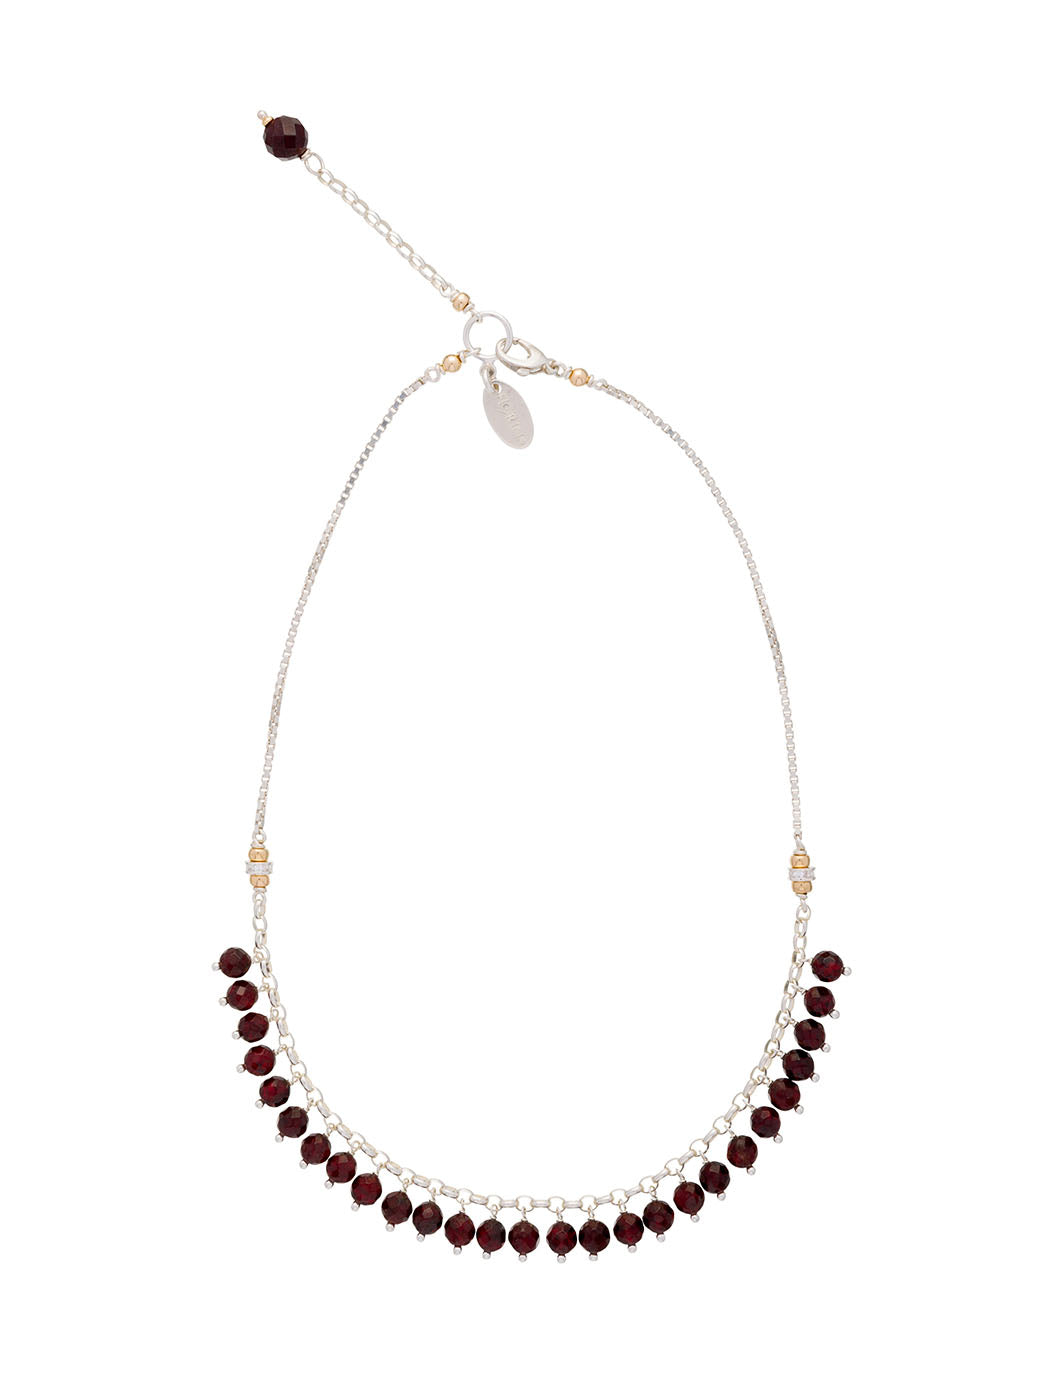 Fiorina Jewellery Raindrop Necklace Garnet